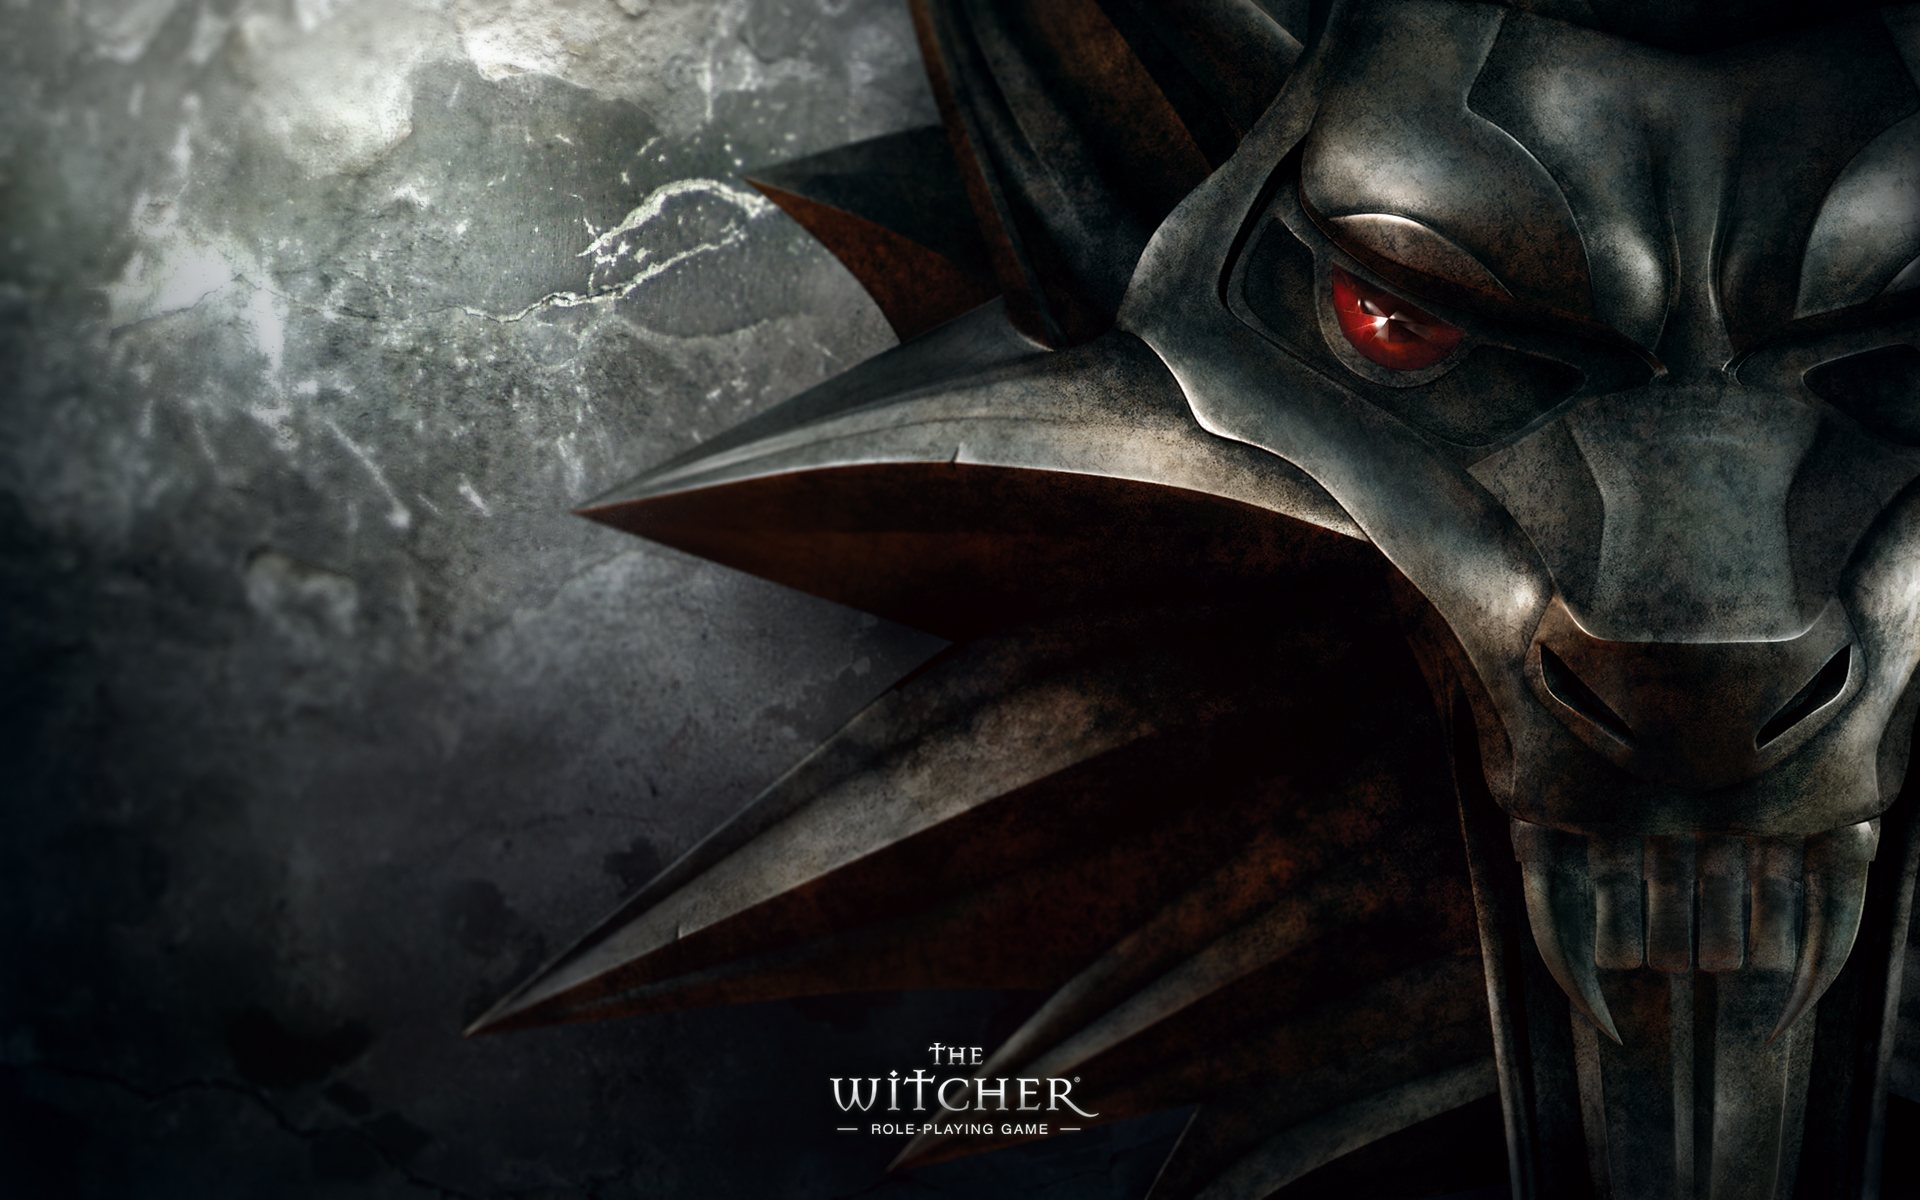 The Witcher Wallpapers the witcher hd wallpaper Wallpapereorg 1920x1200